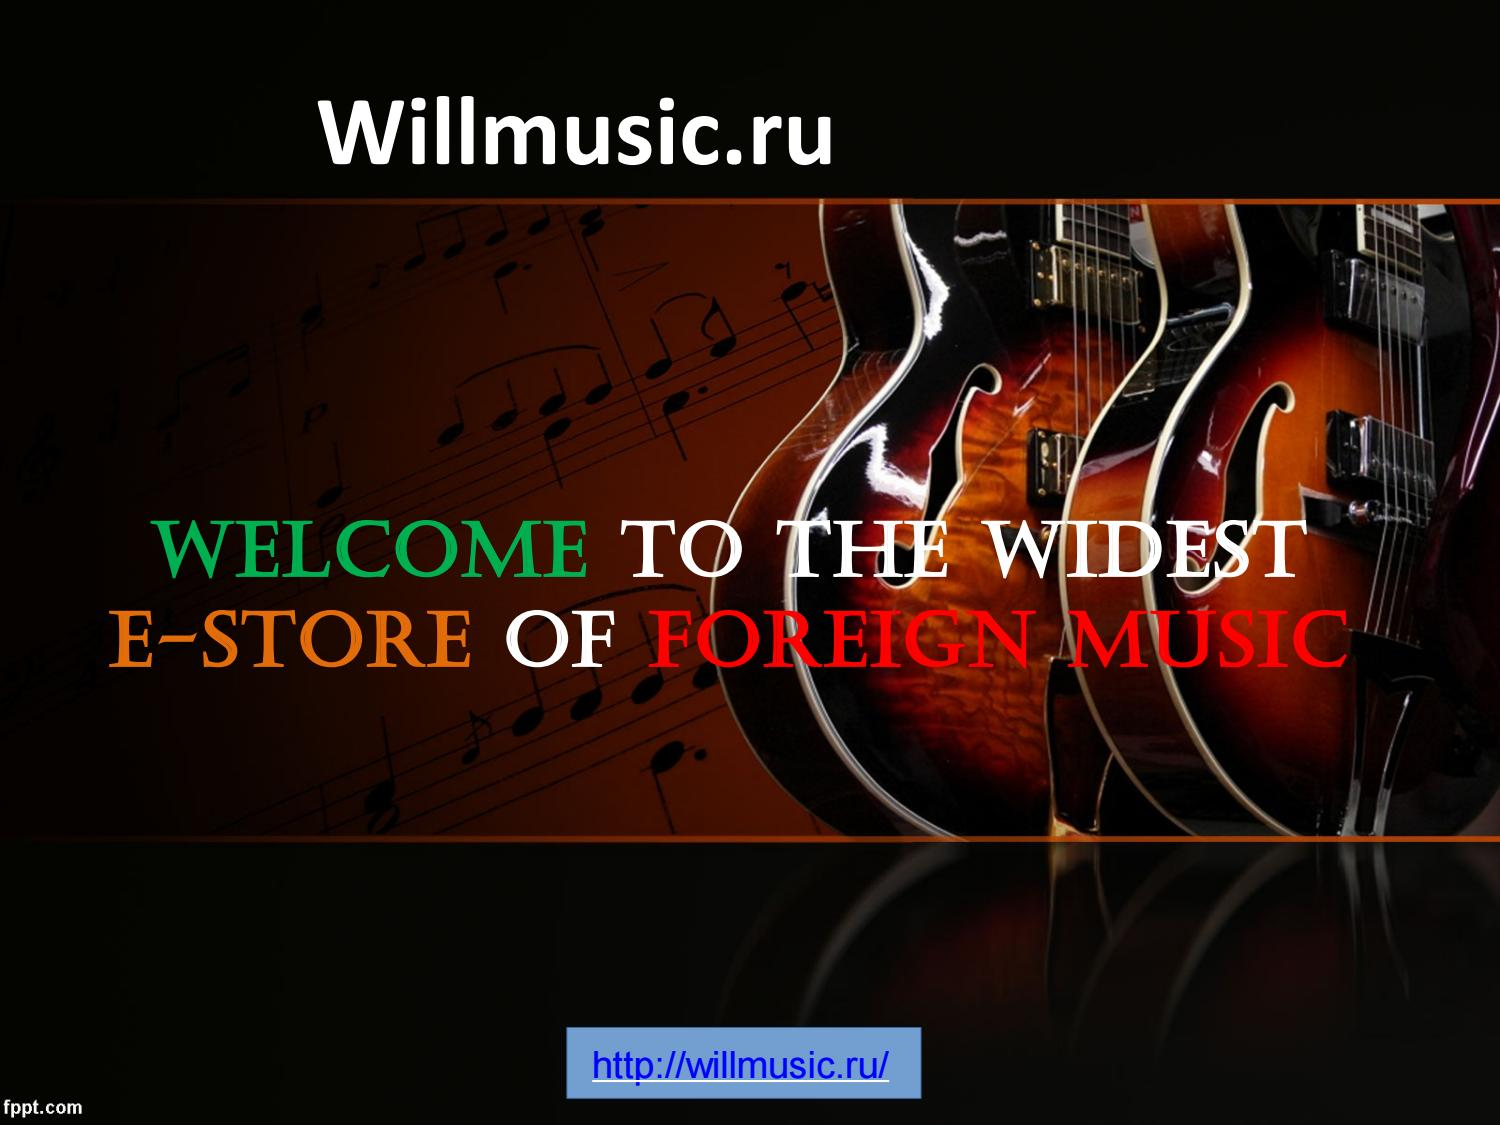 site for downloading foreign music